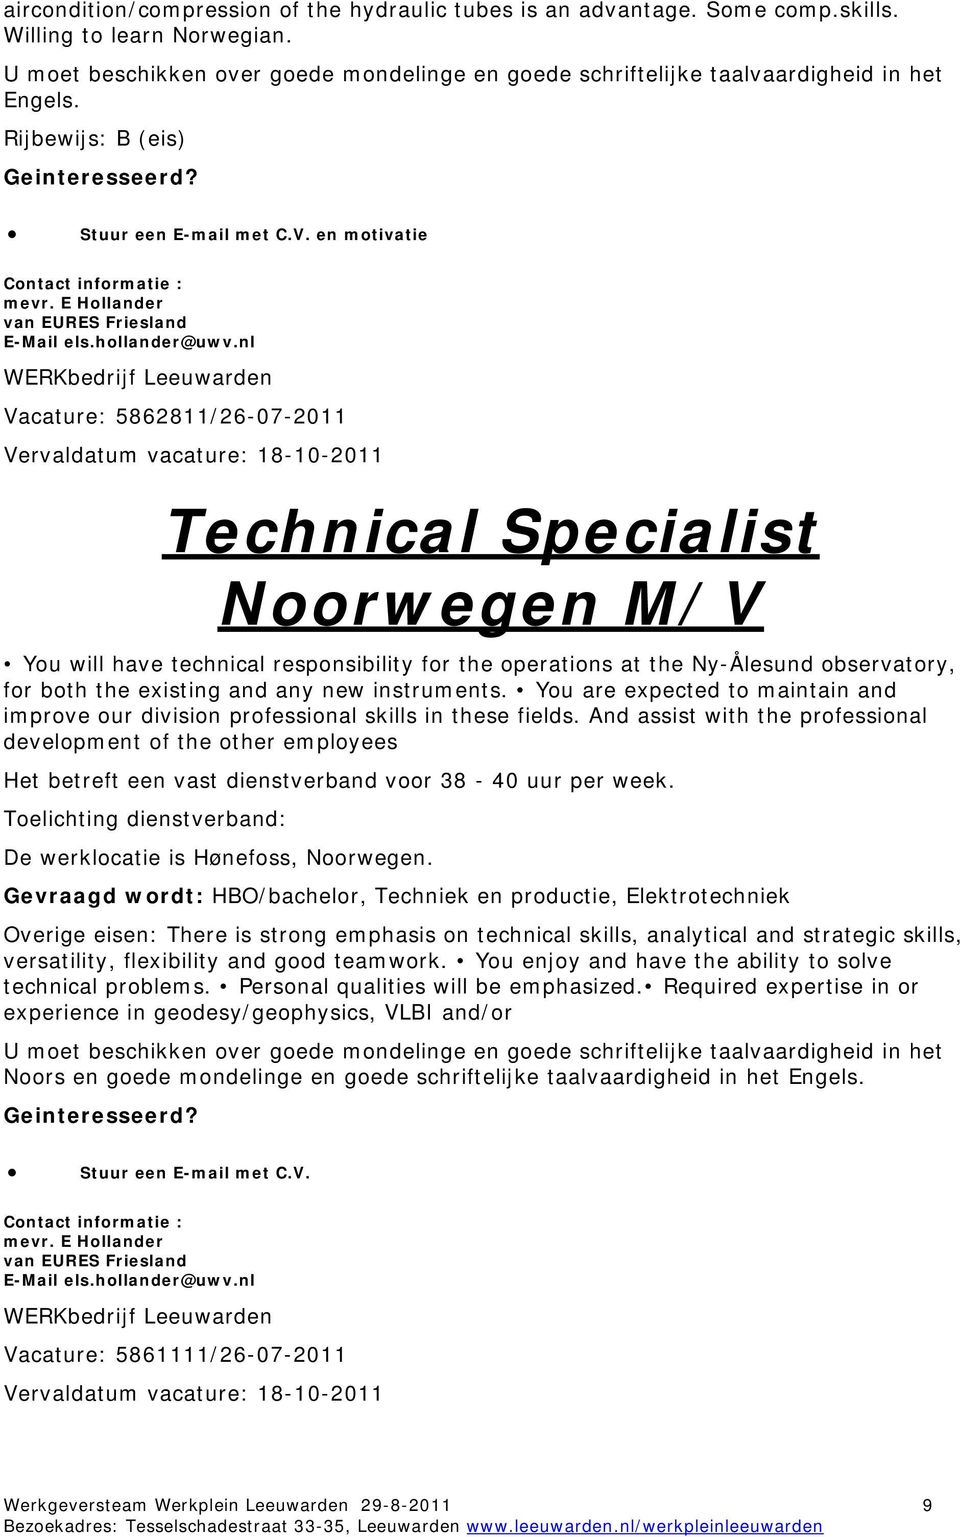 nl Vacature: 5862811/26-07-2011 Vervaldatum vacature: 18-10-2011 Technical Specialist Noorwegen M/V You will have technical responsibility for the operations at the Ny-Ålesund observatory, for both